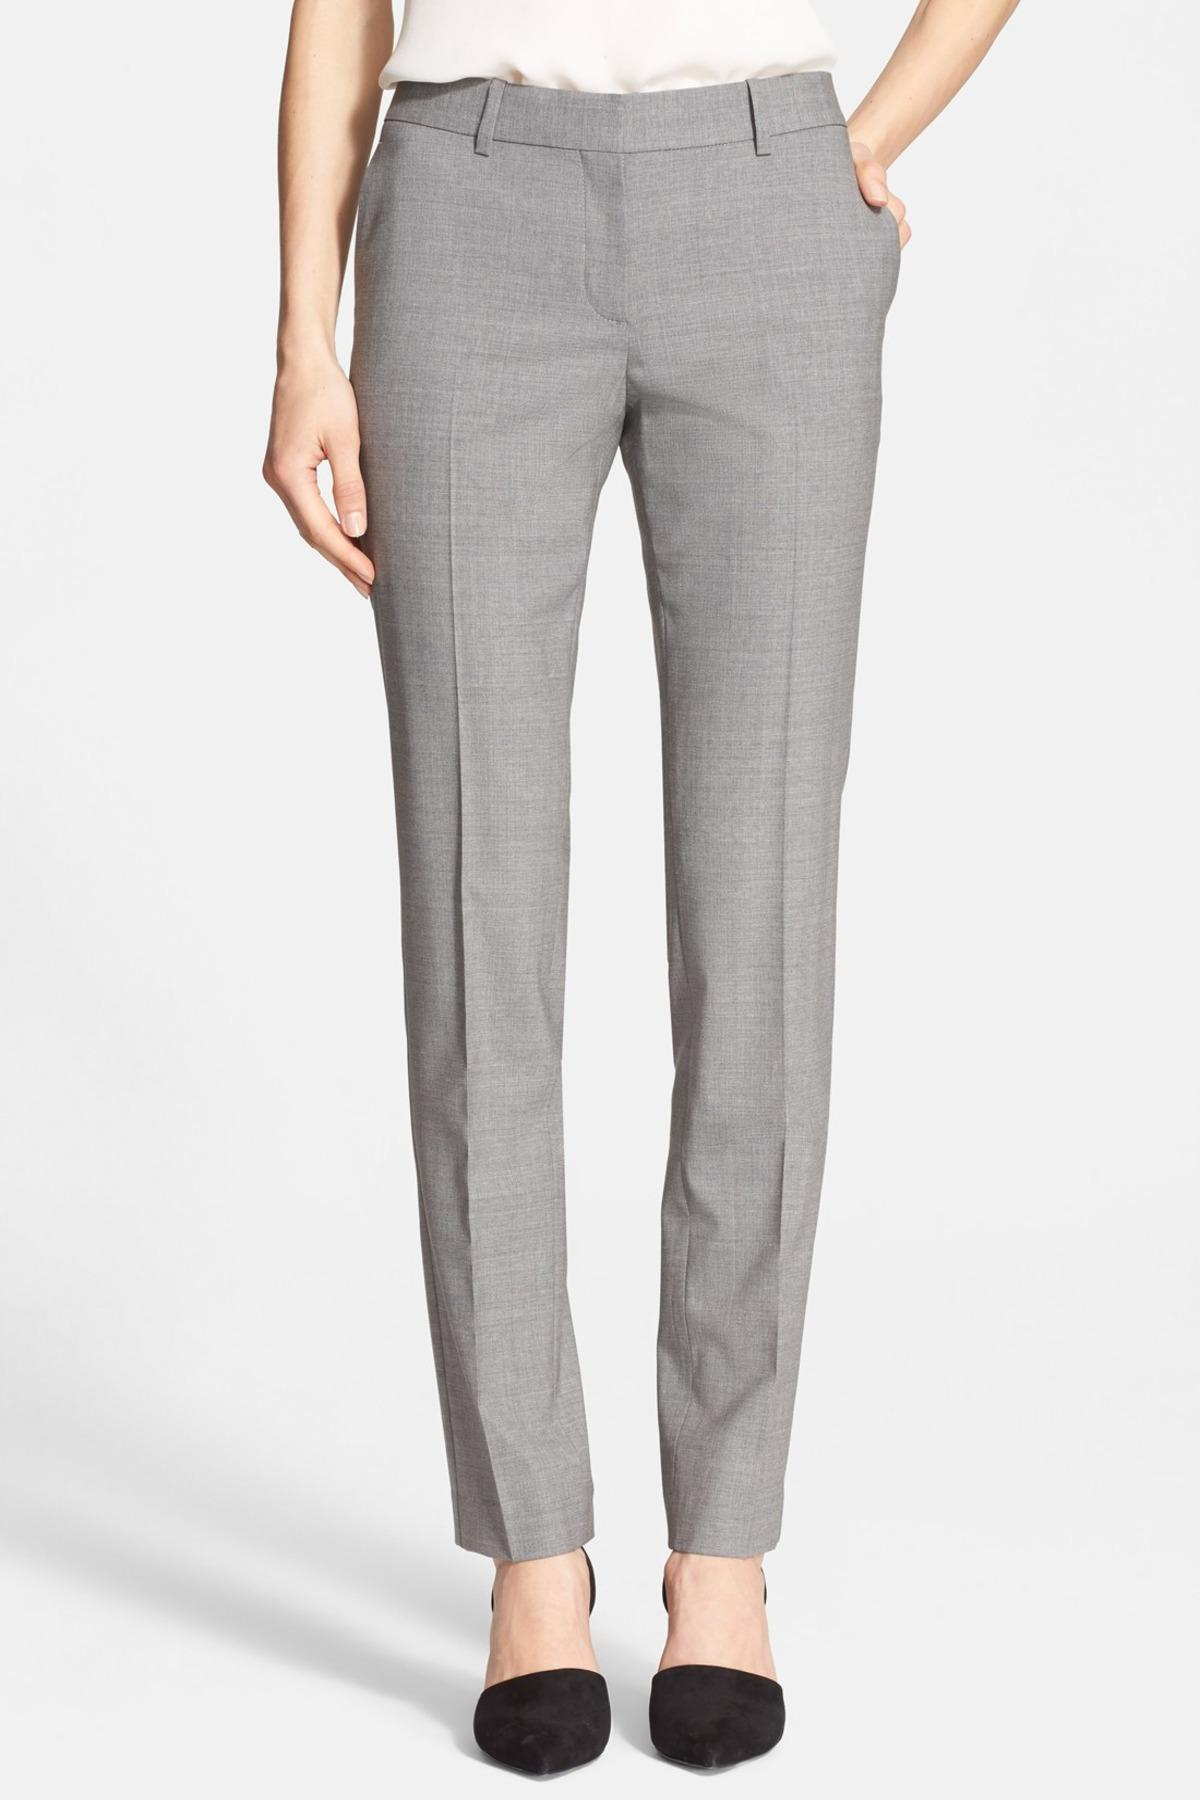 e3febacc43 Lyst - Theory Super Slim Edition Stretch Wool Blend Pant in Gray